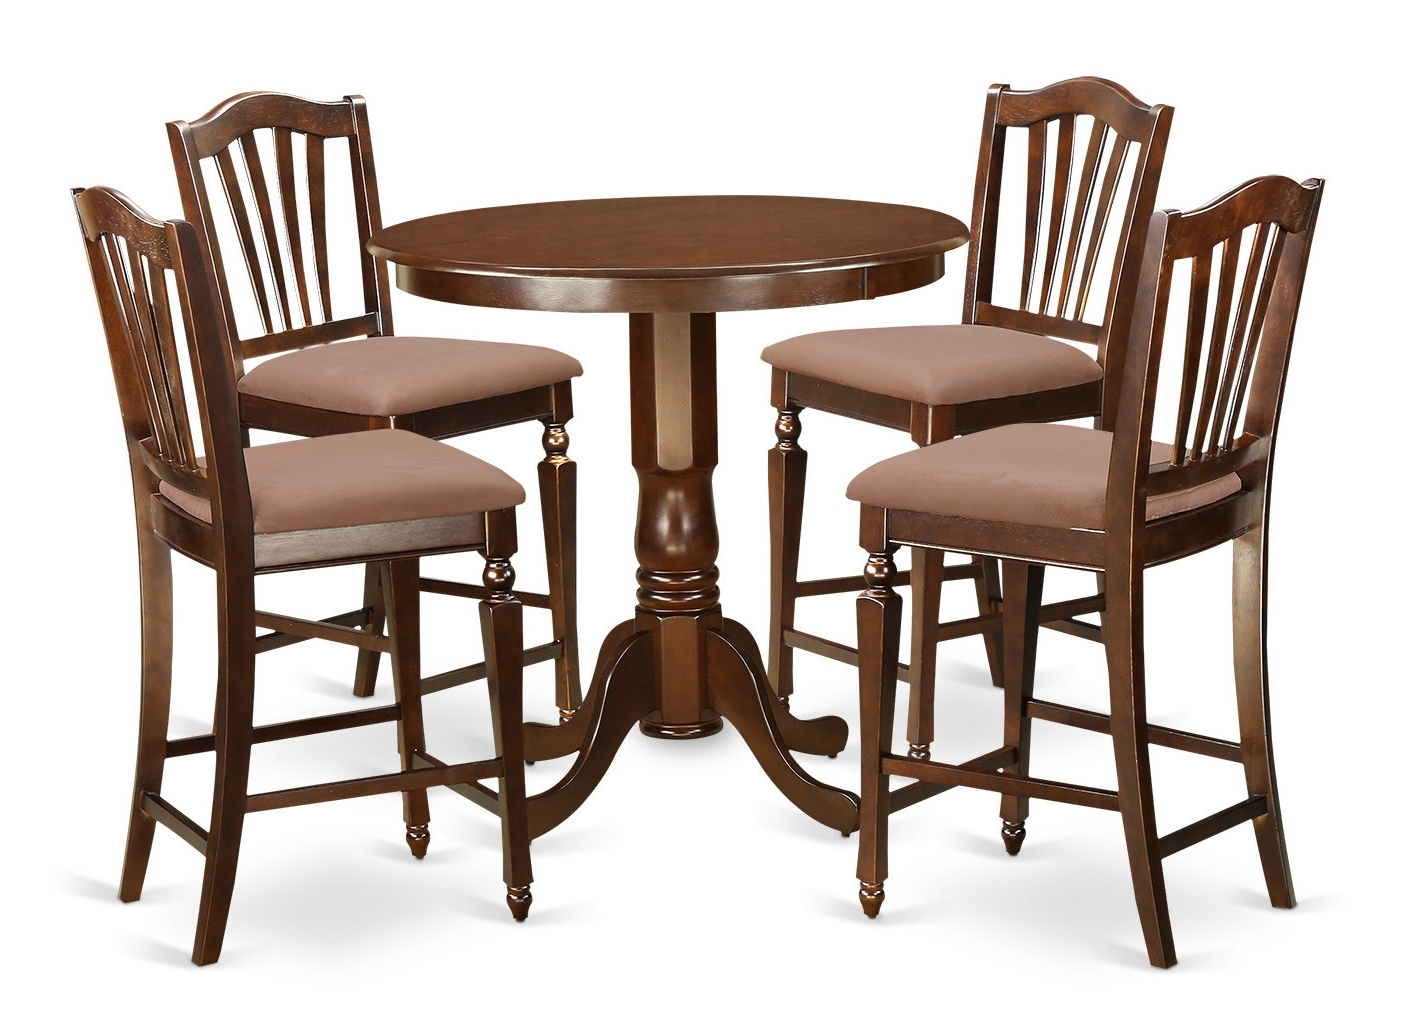 Wayfair With Regard To Jaxon 5 Piece Extension Counter Sets With Fabric Stools (View 8 of 25)